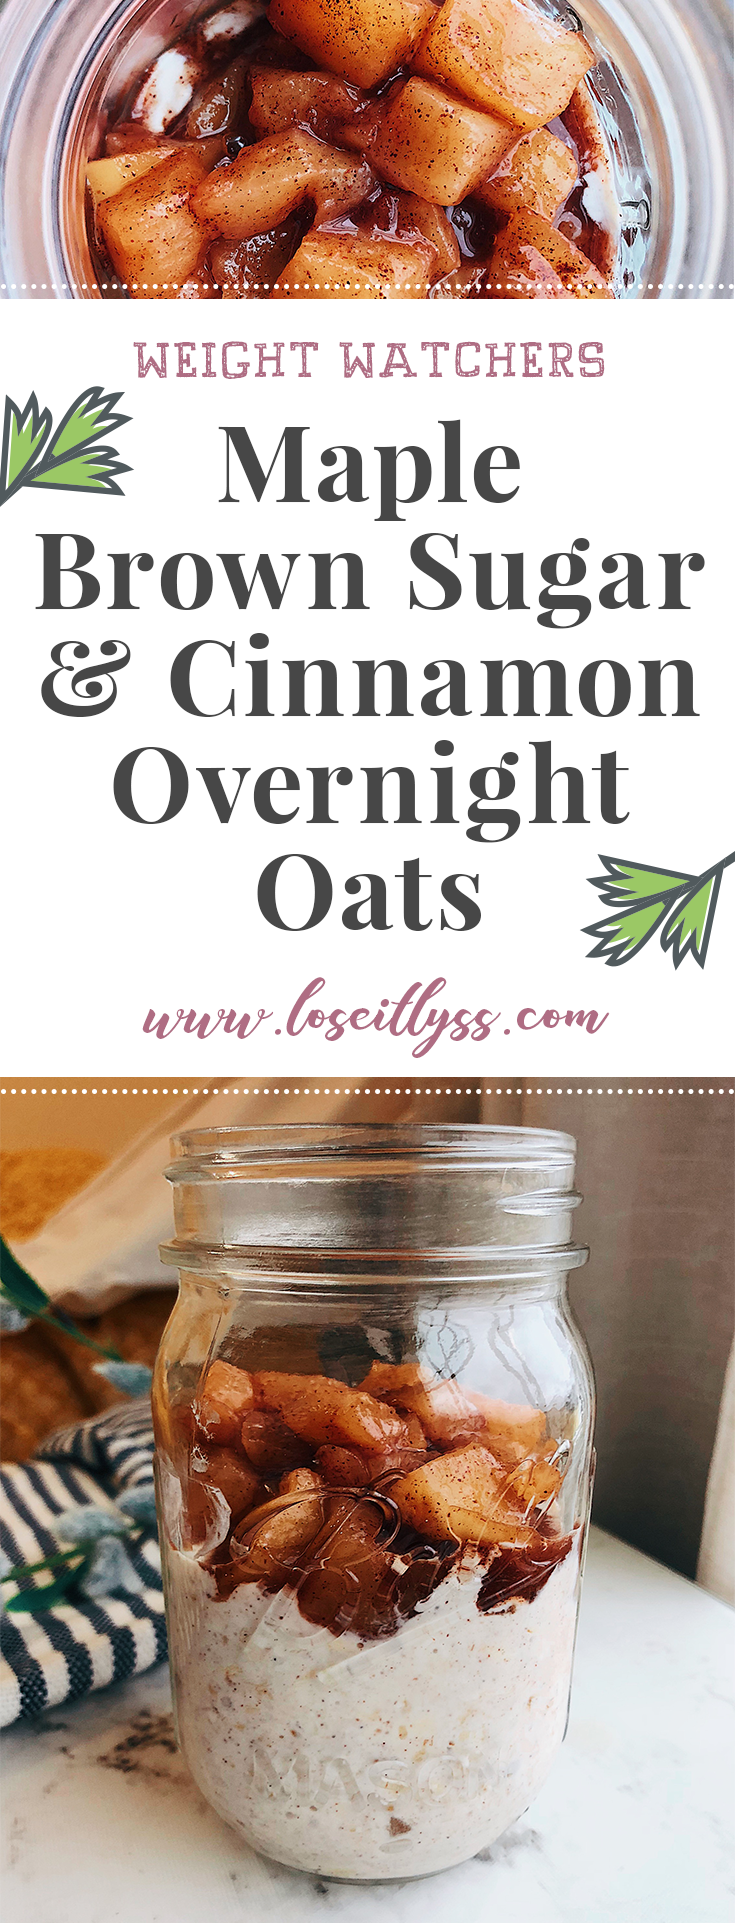 Weight Watchers Overnight Oats pin